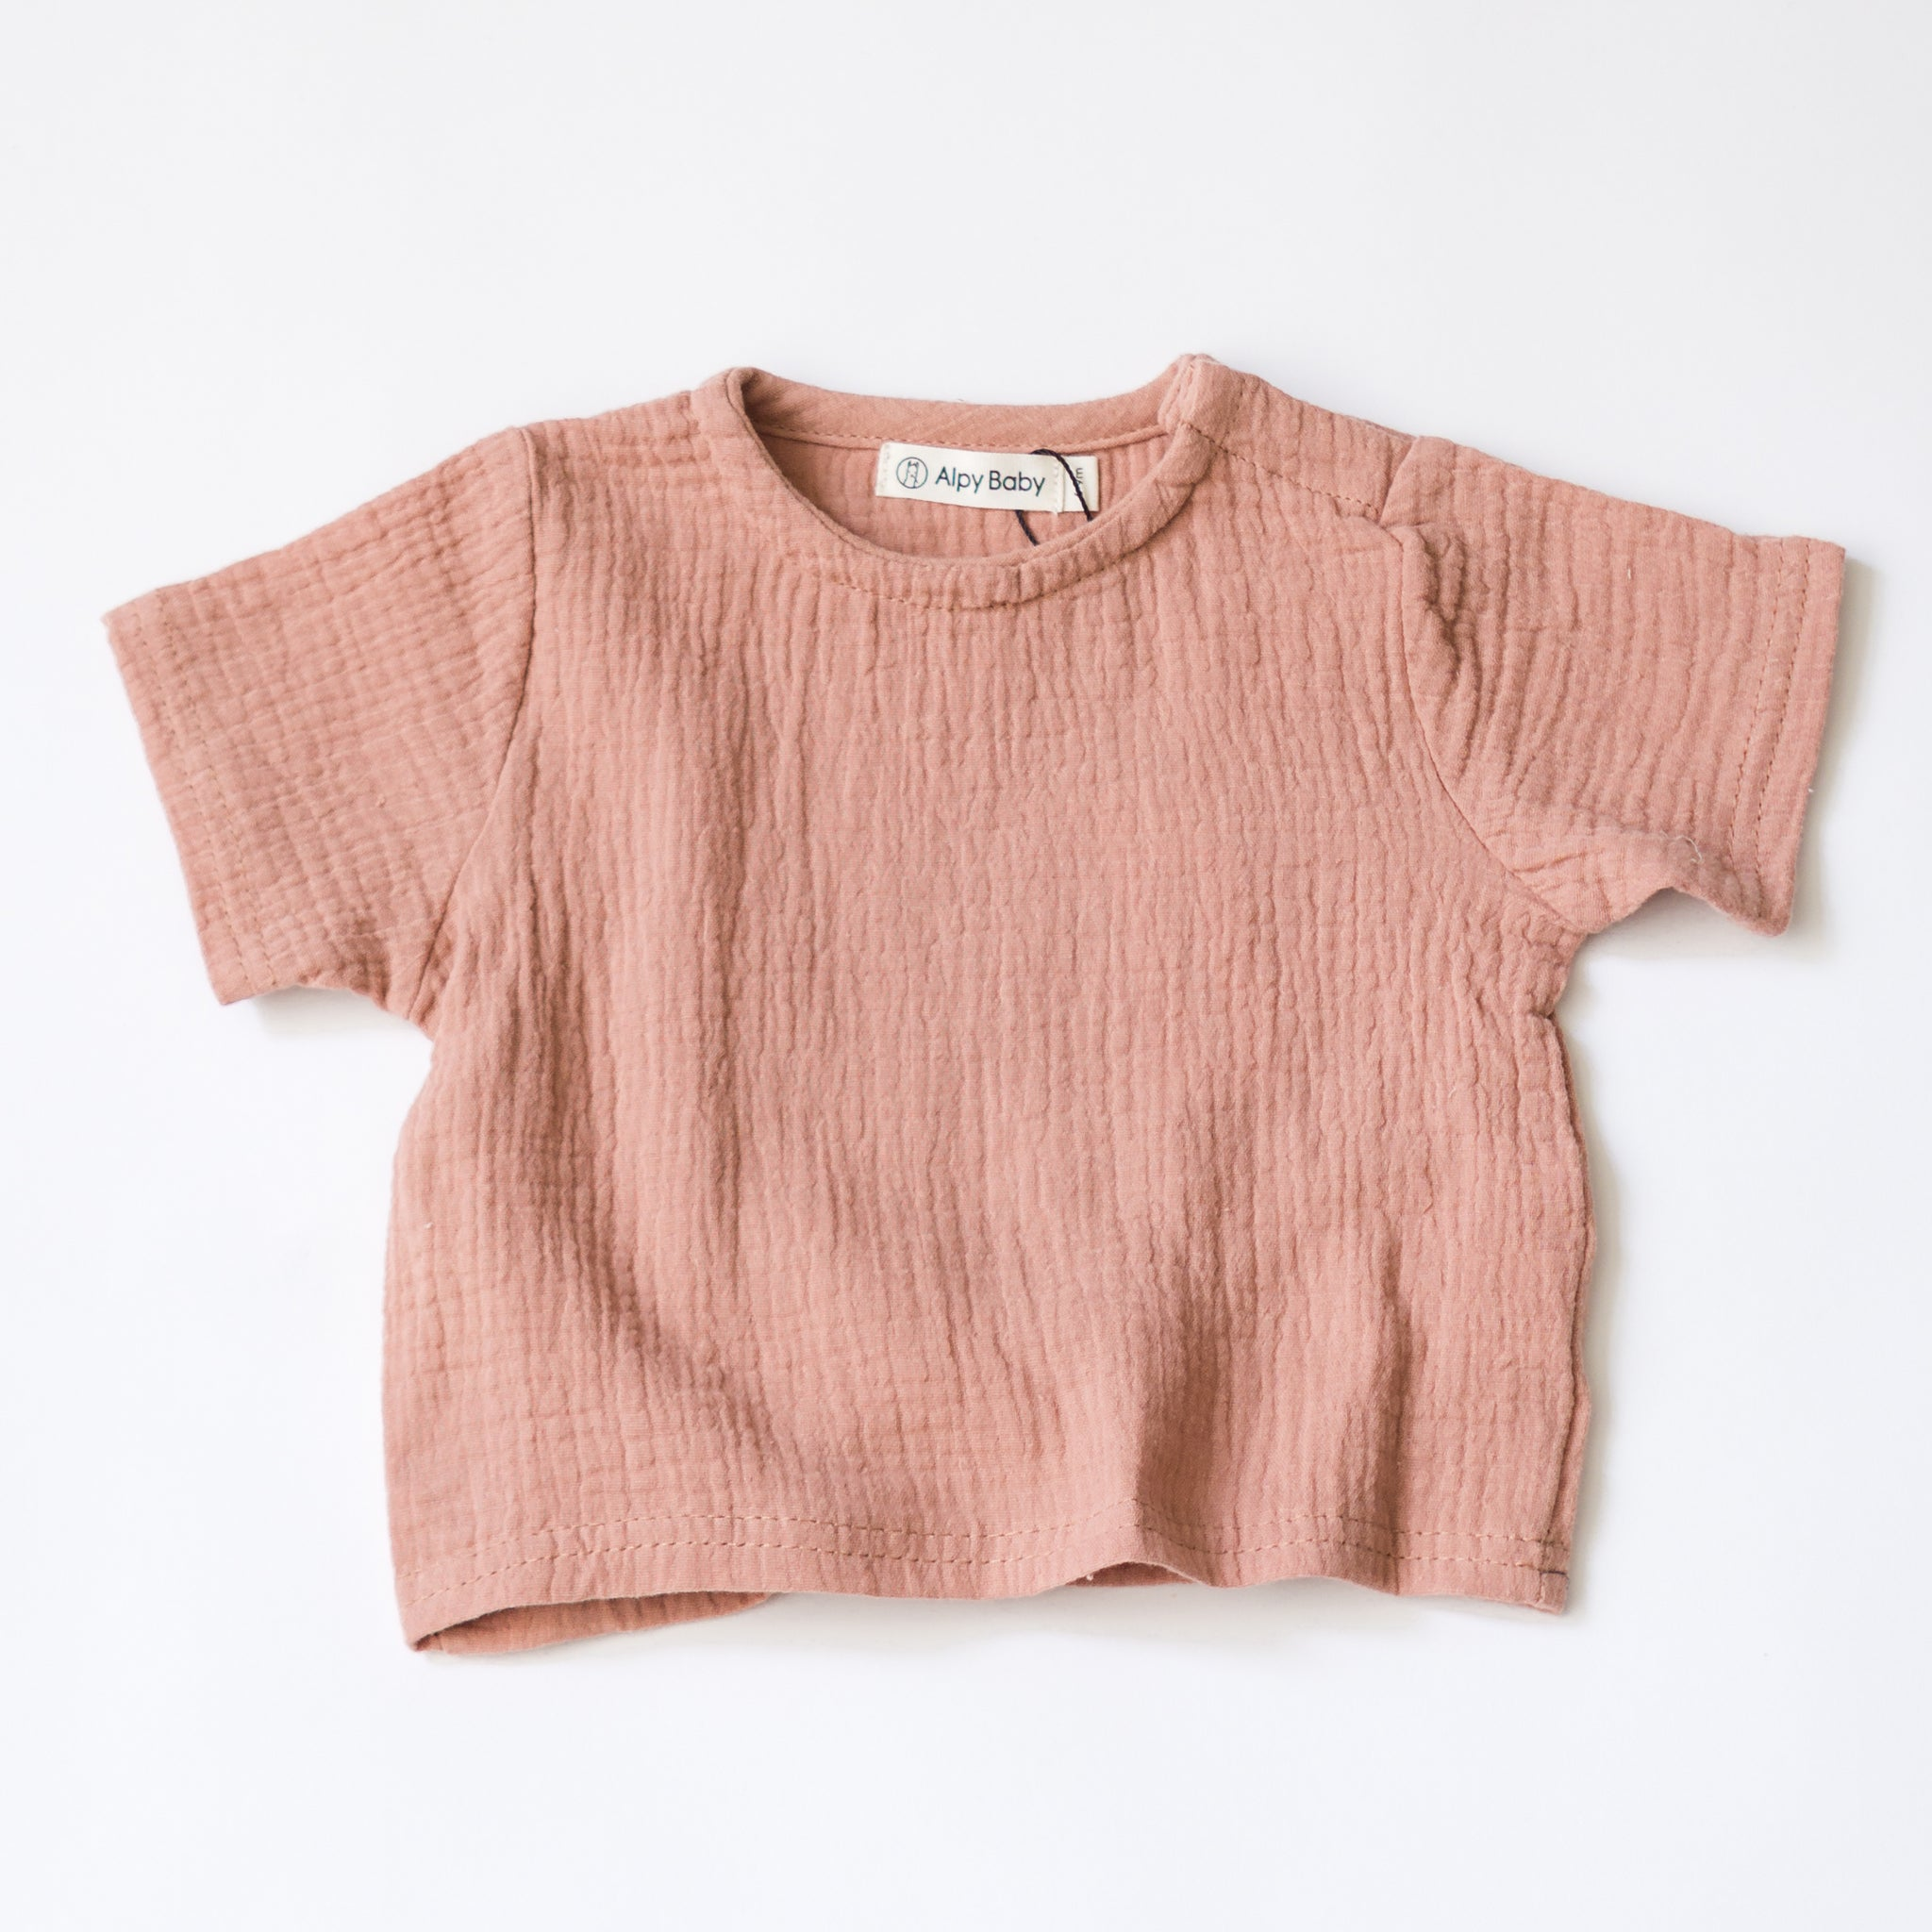 Everyday Boxy Muslin Tee - Desert Rose